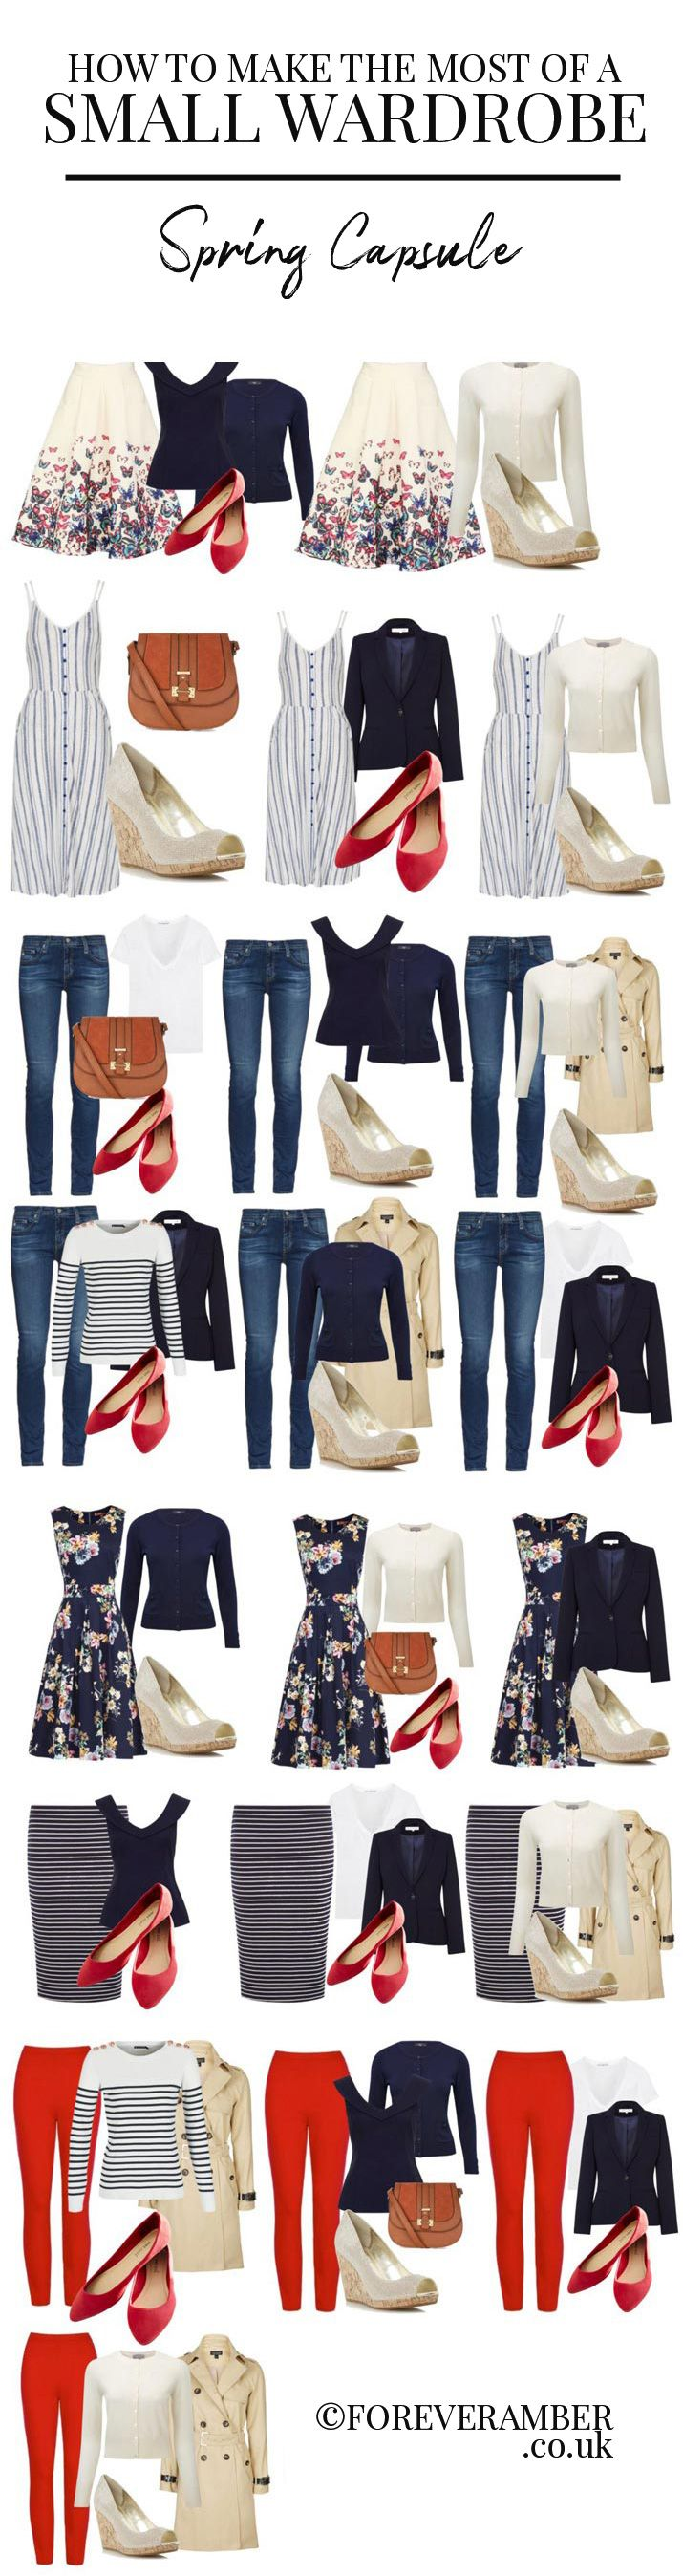 how to make the most of a small wardrobe: sample capsule wardrobe for spring